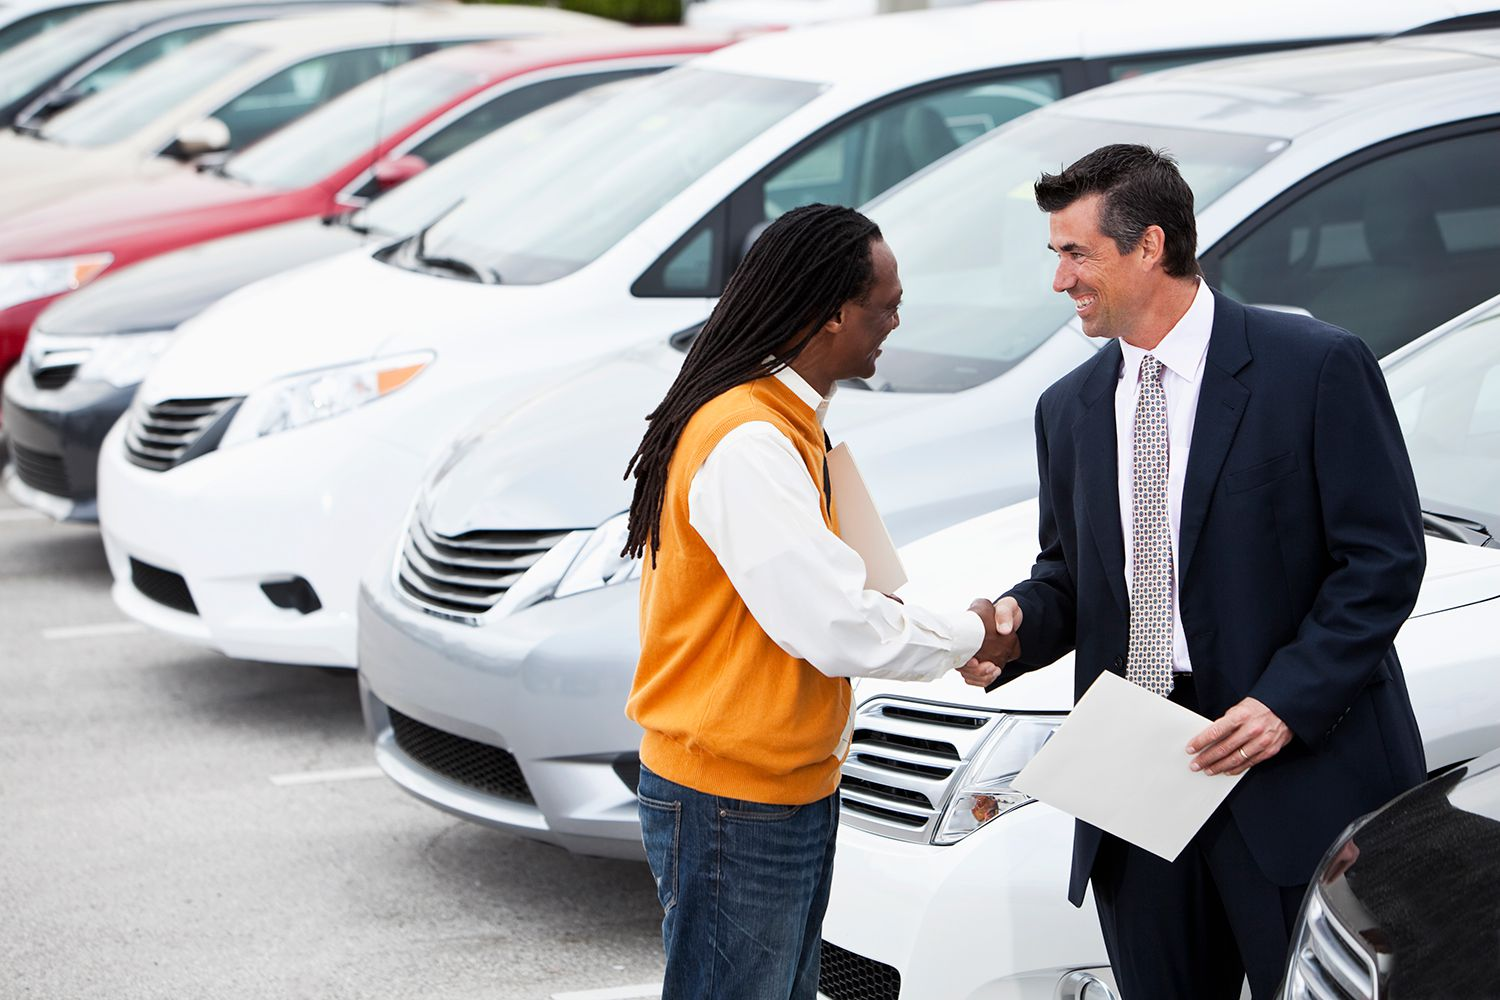 15 Things to Check on a Used Car Before You Purchase It